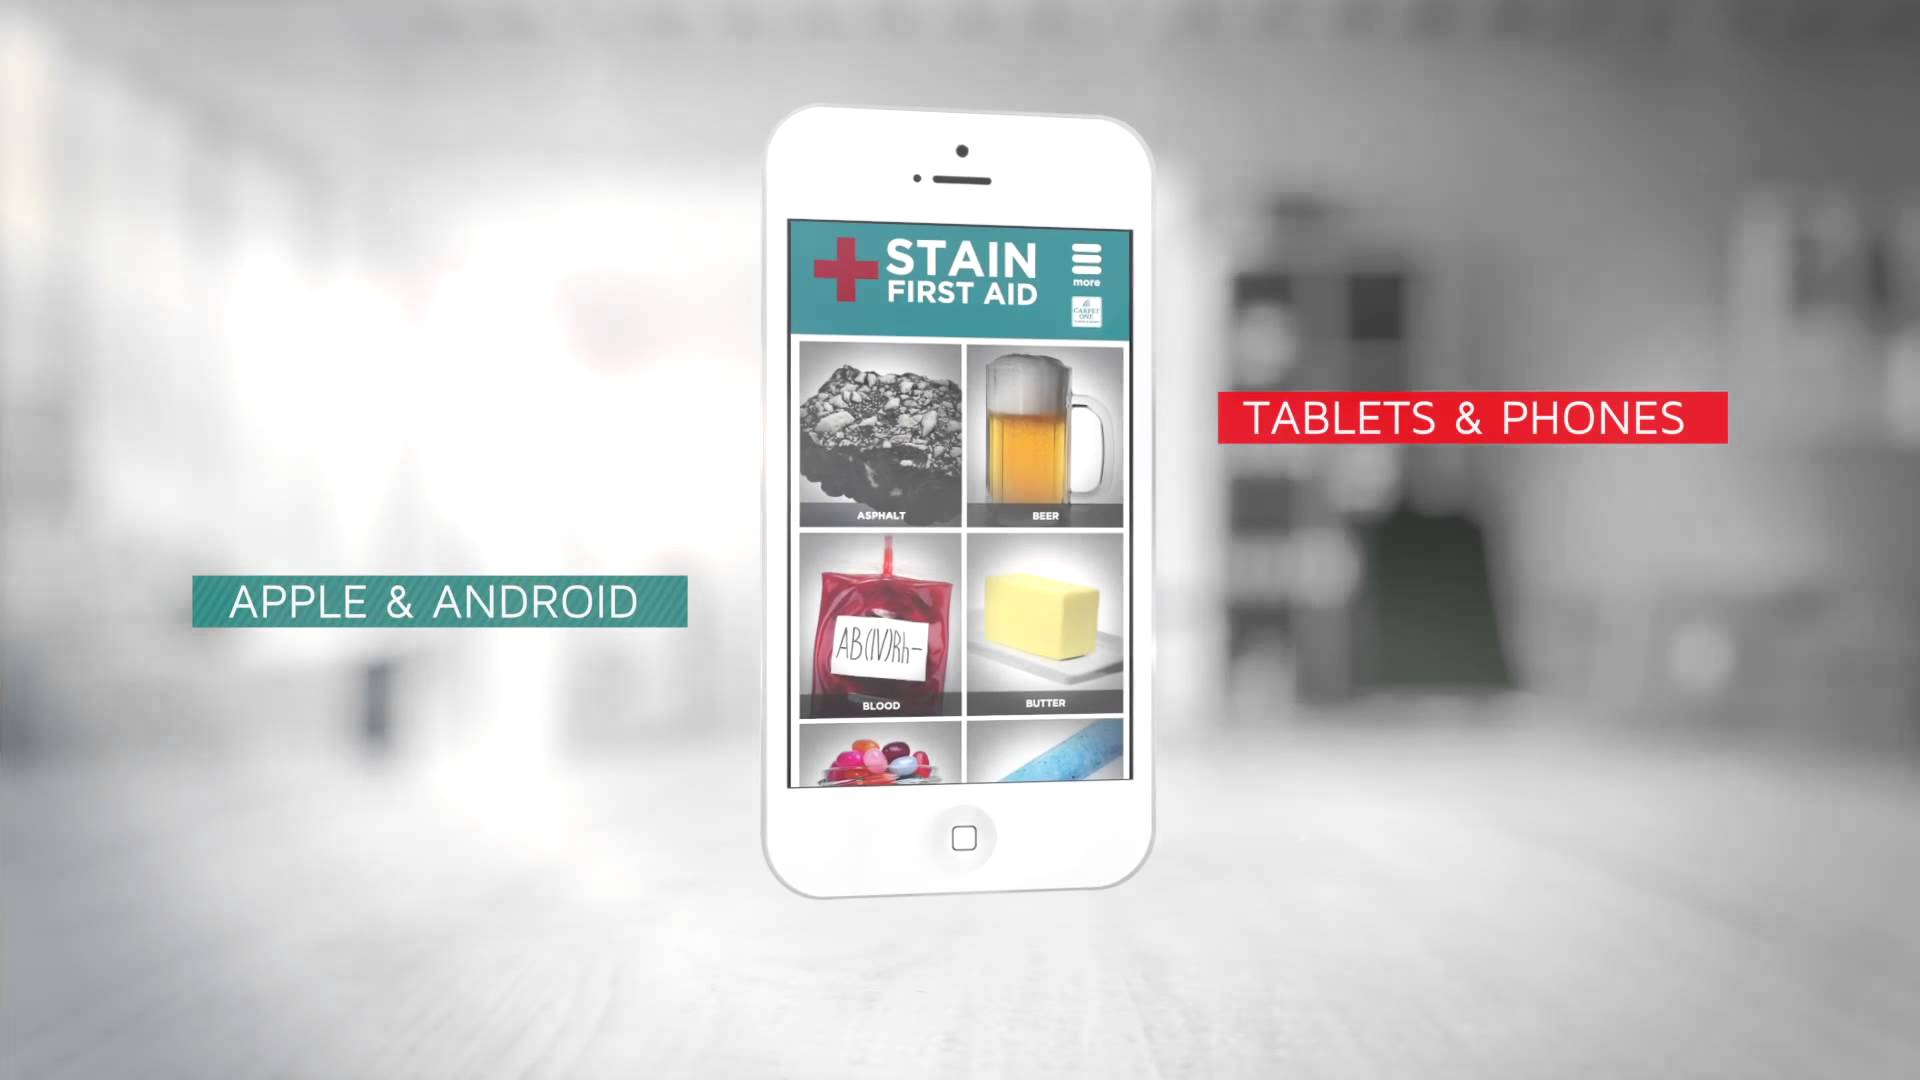 stain app, stain first aid